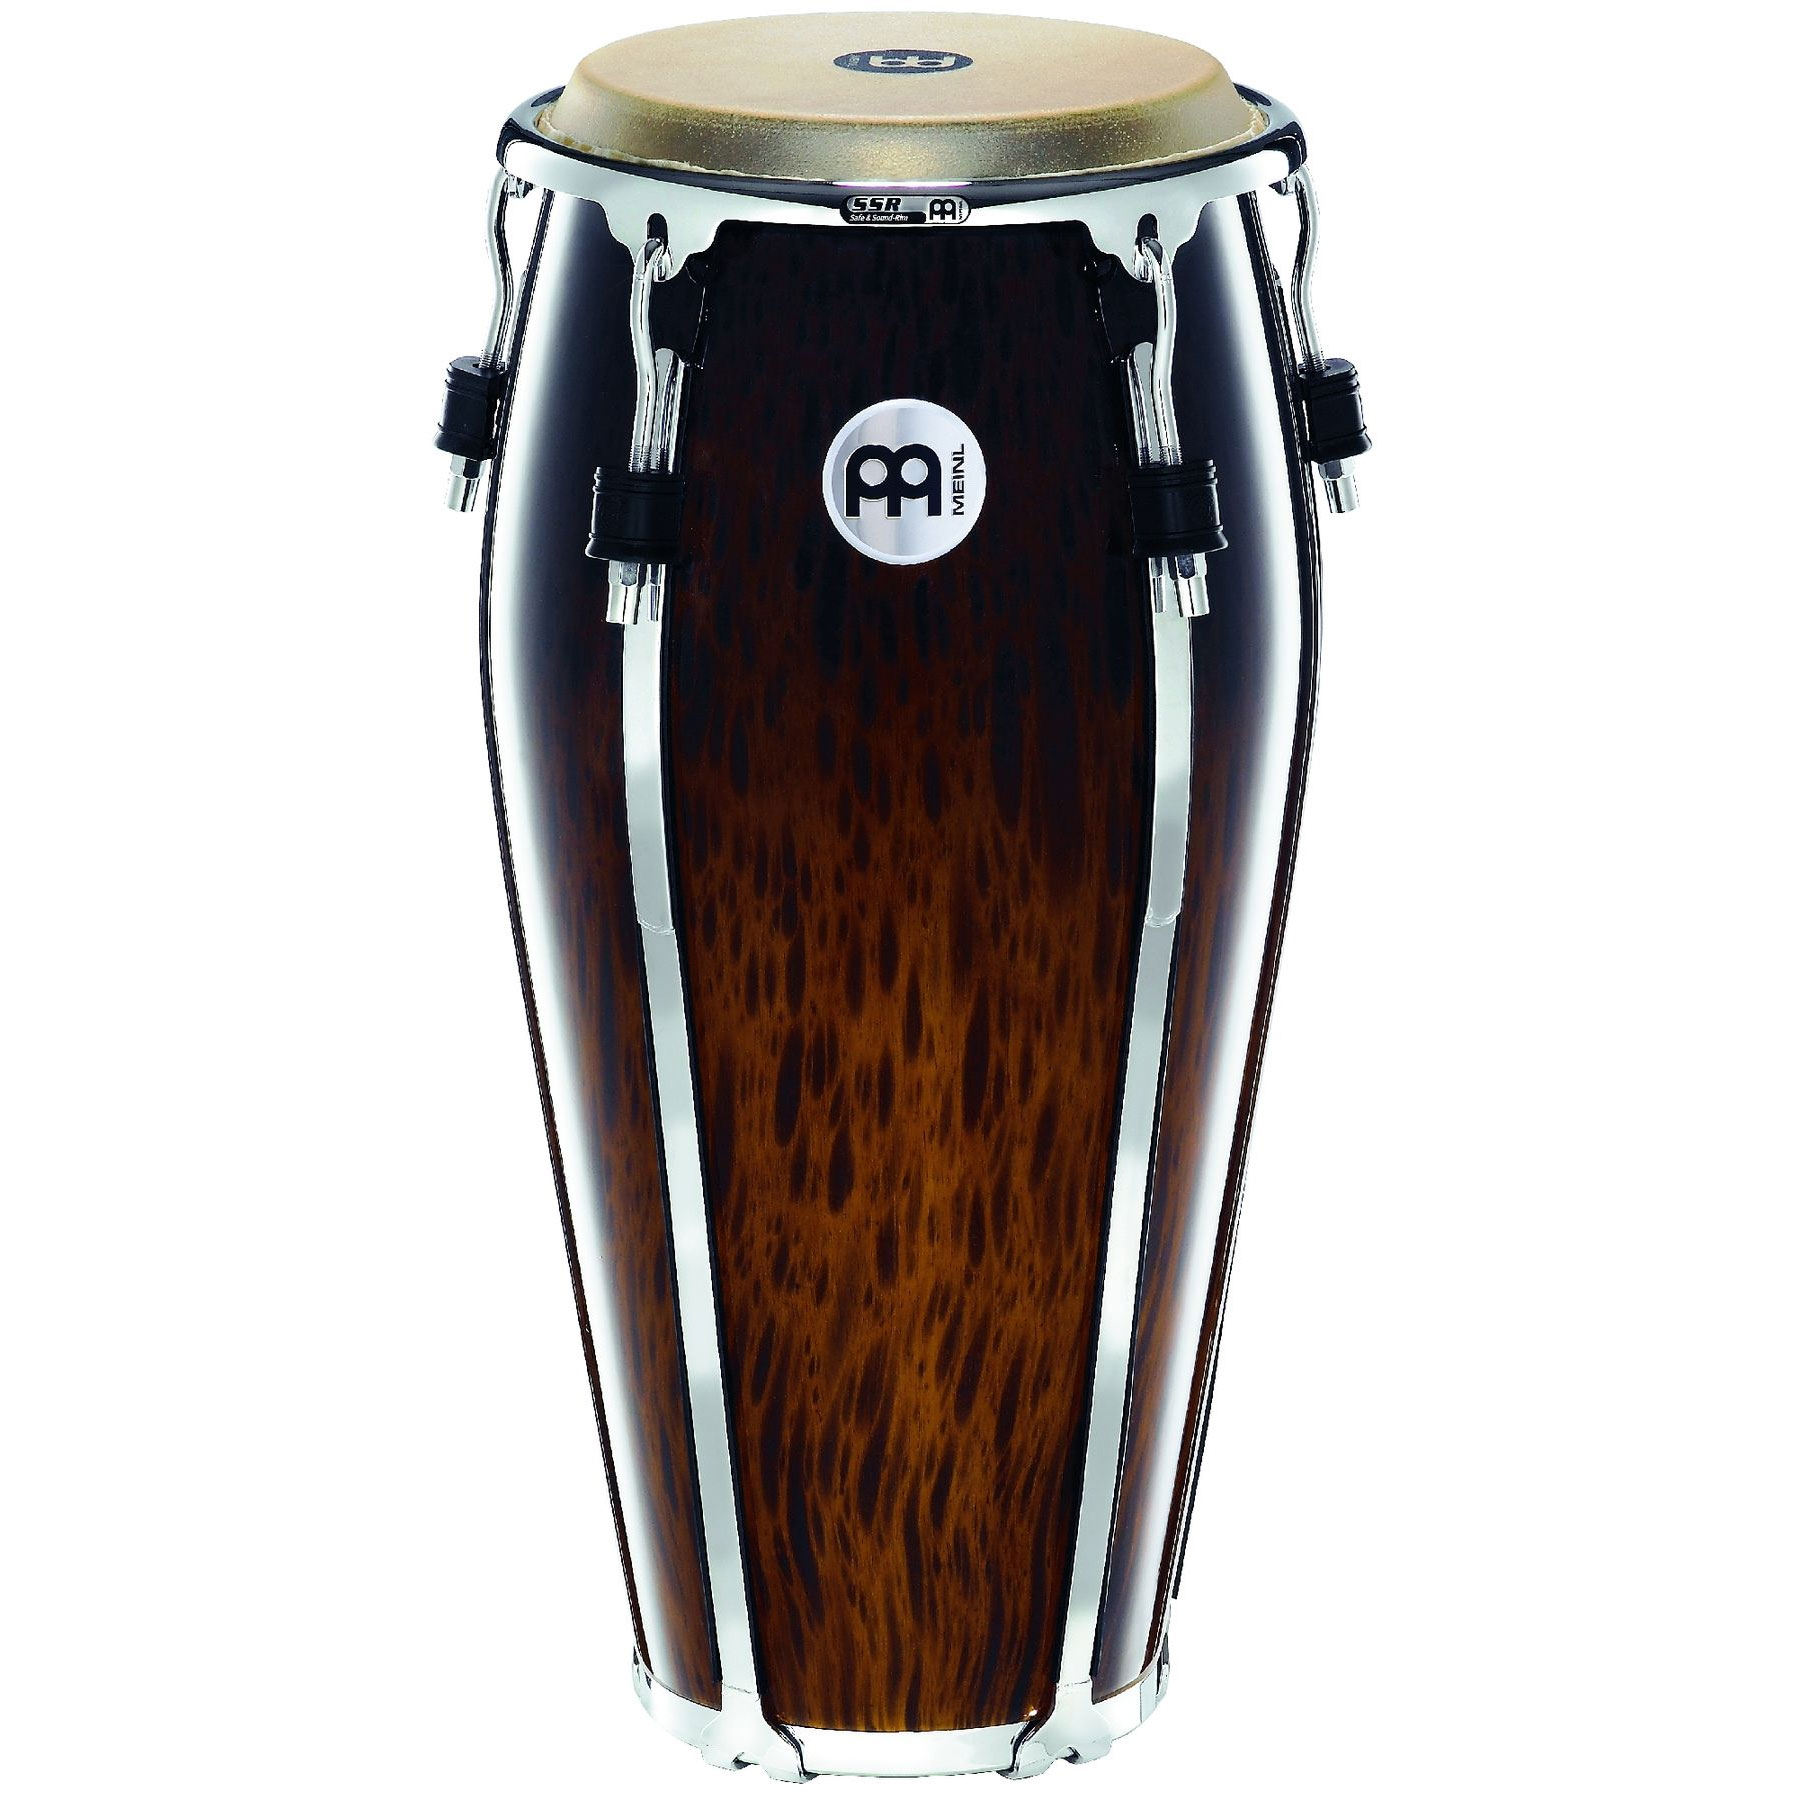 "Meinl Nino 10"" Floatune Conga in Brown Burl"